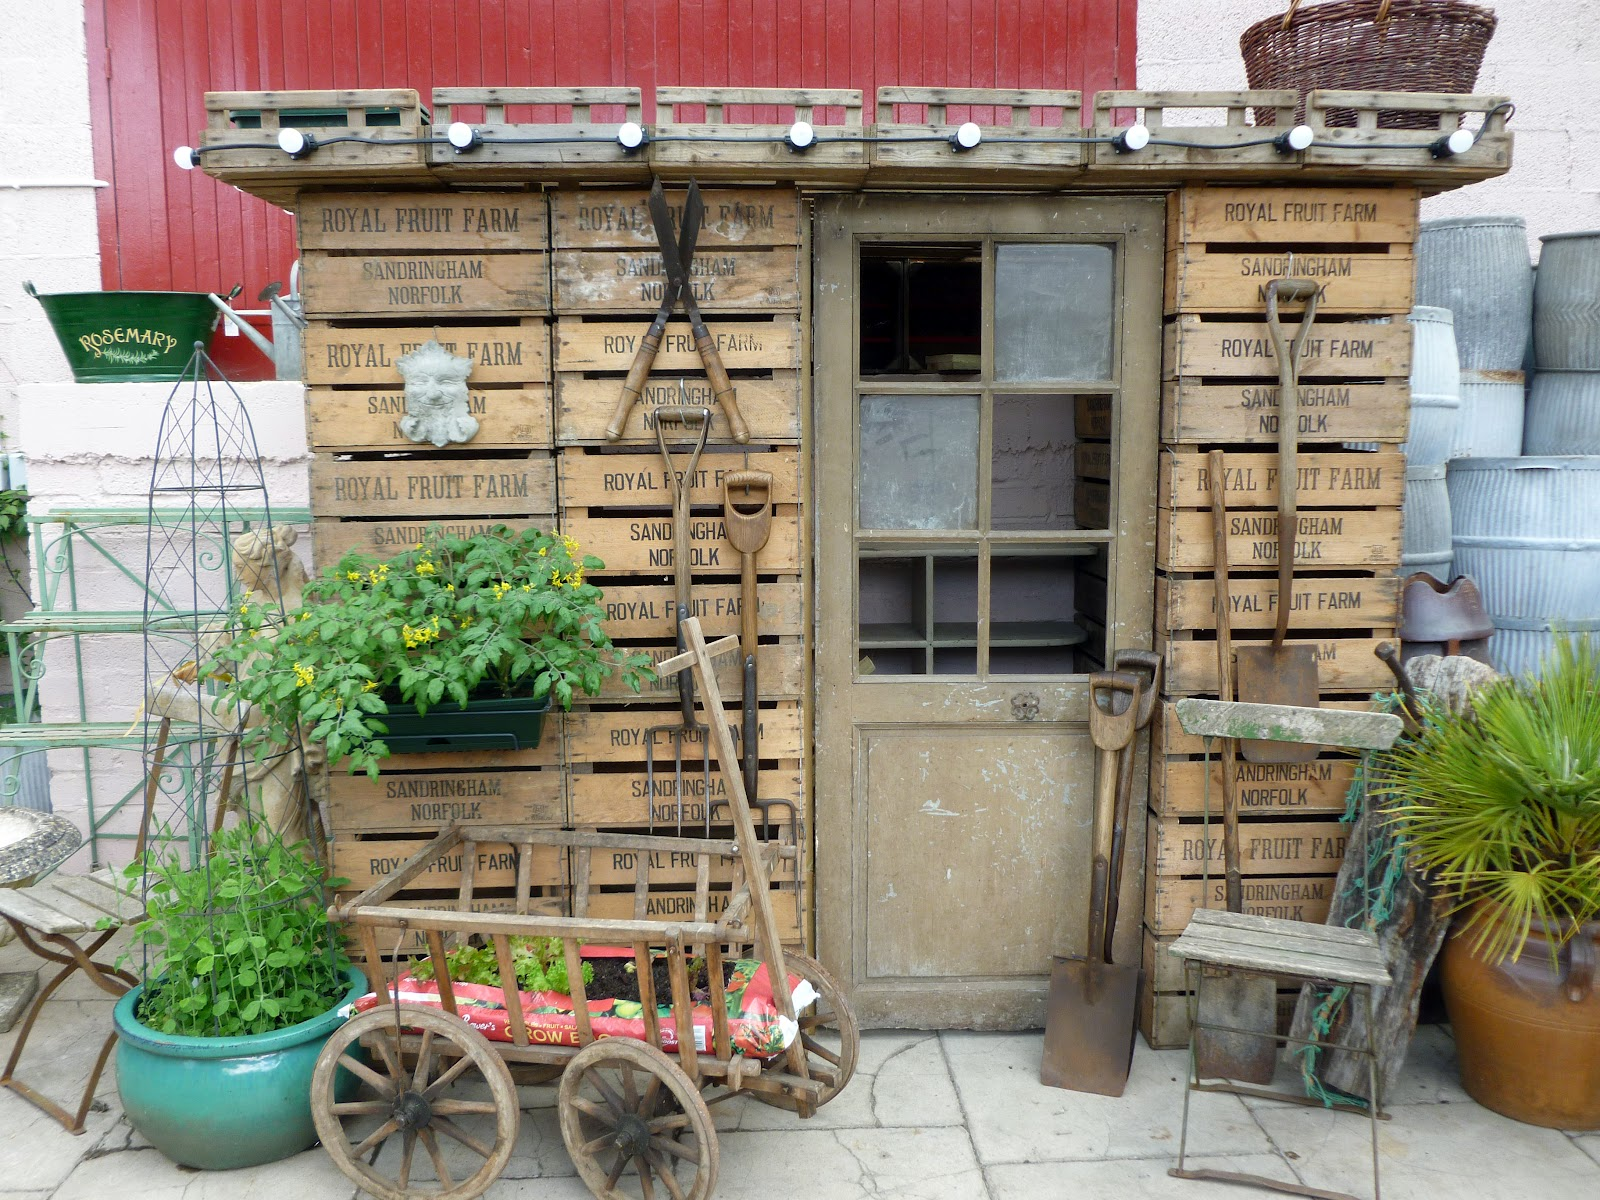 The Drill Hall Emporium: wonderful recycled English potting shed